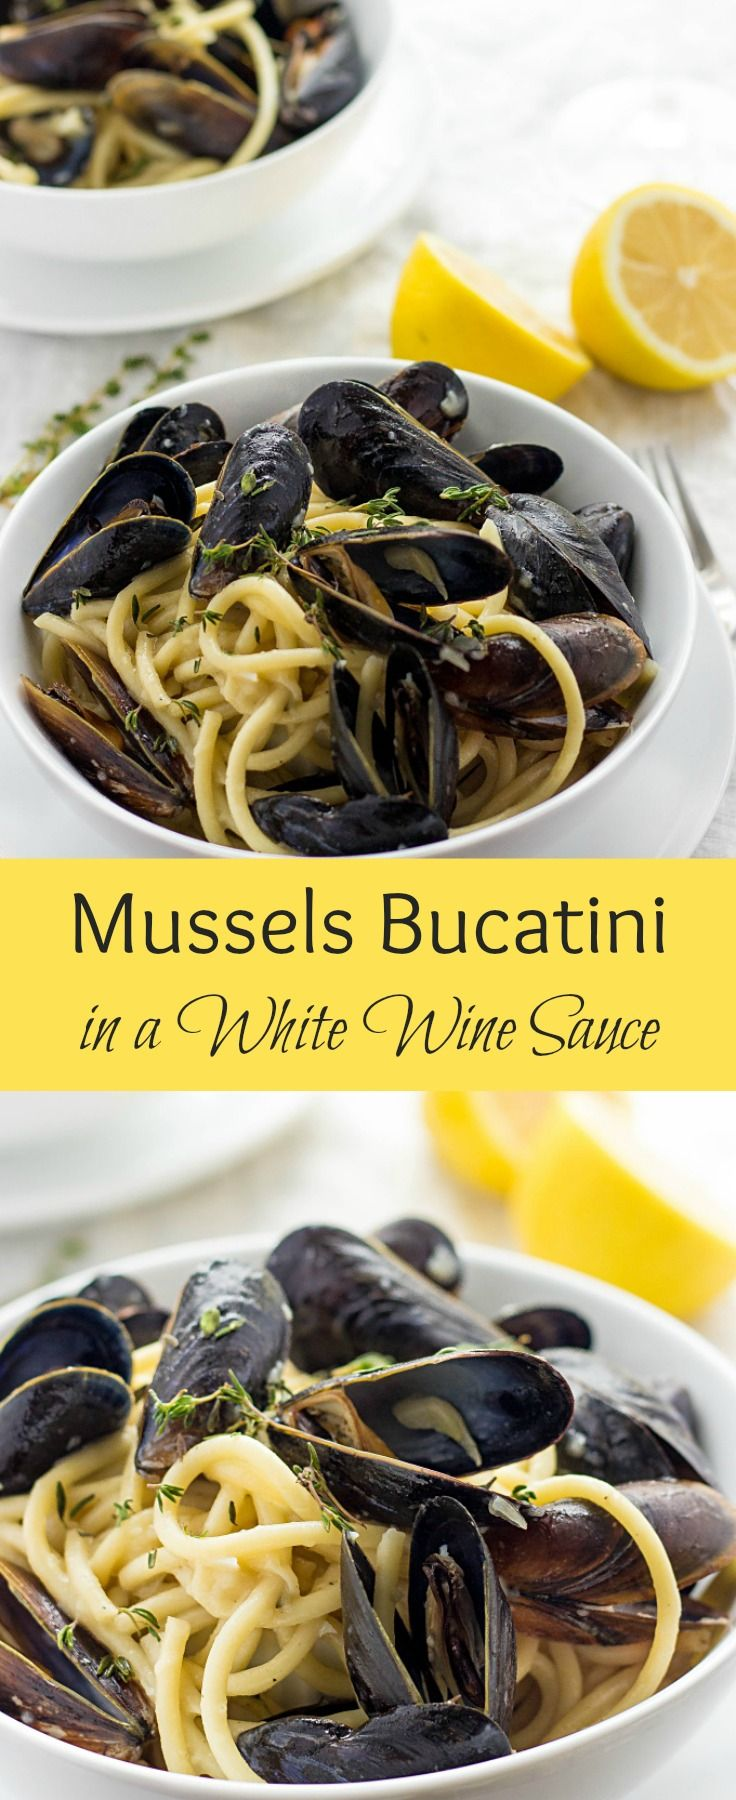 Mussels Bucatini In A White Wine Sauce via @https://www.pinterest.com/lavenderandmcrn/